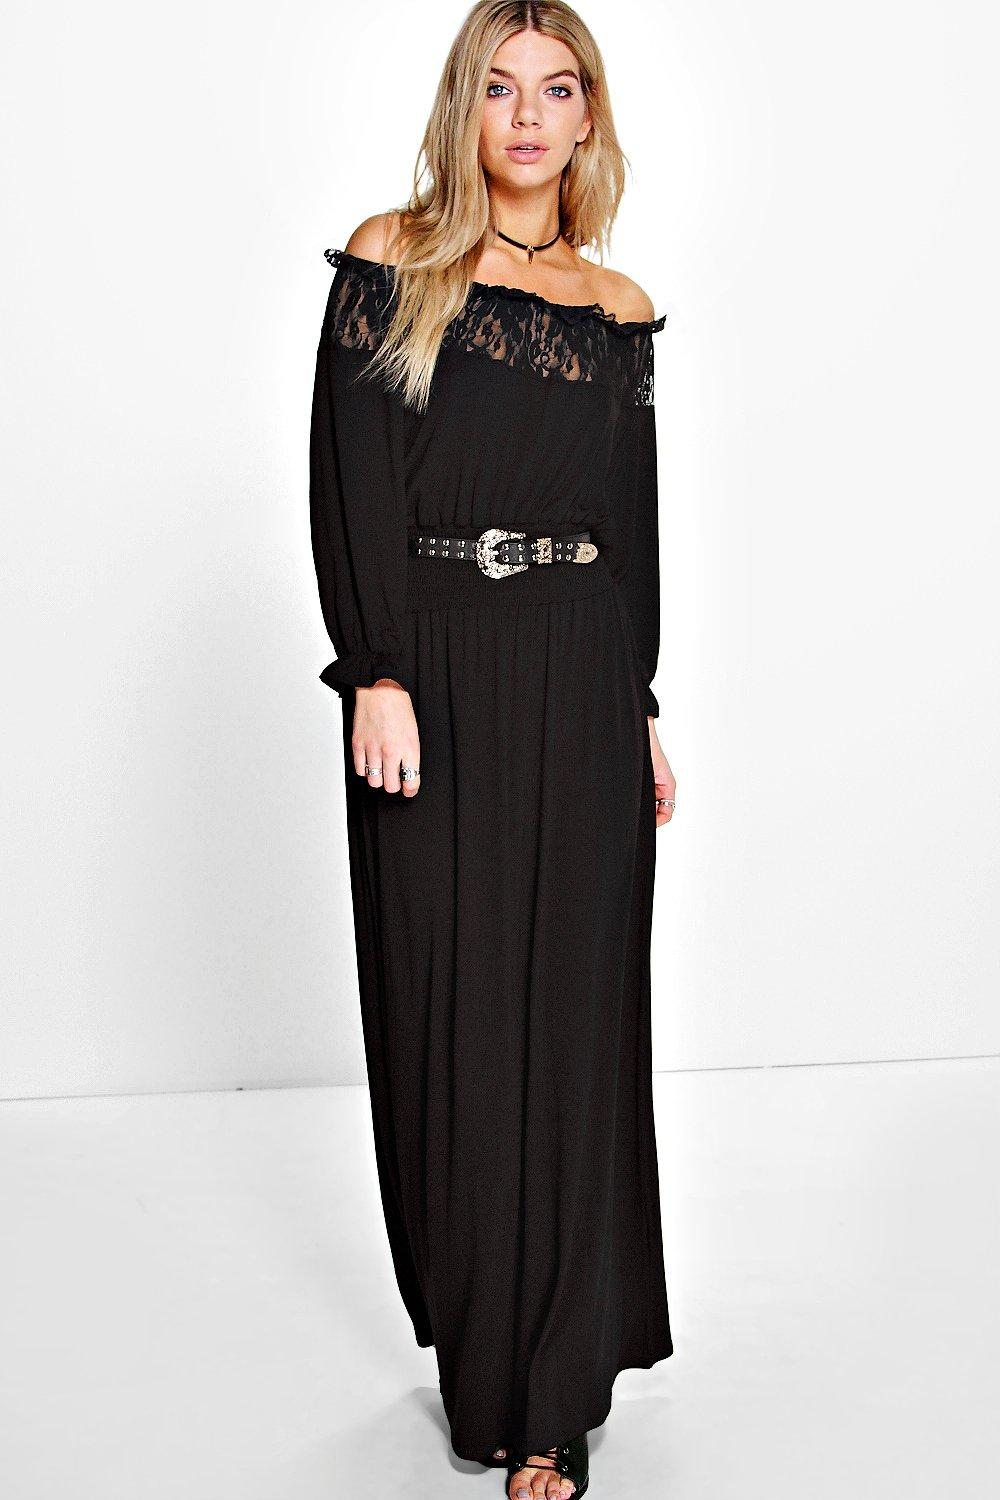 Lola Lace Panelled Off The Shoulder Maxi Dress